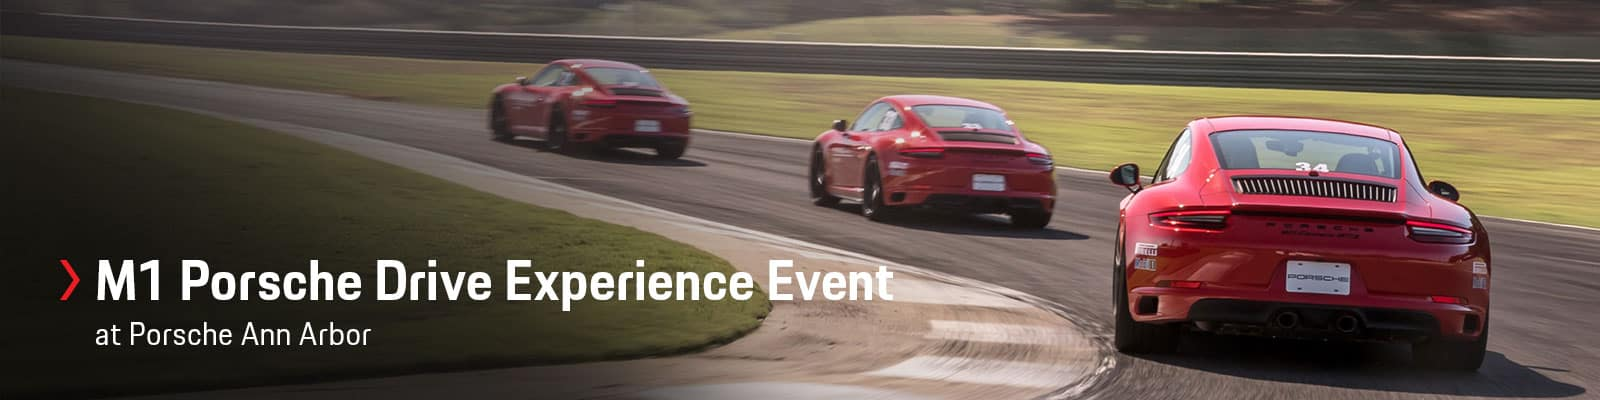 M1 Porsche Drive Experience Event at Germain Porsche of Ann Arbor